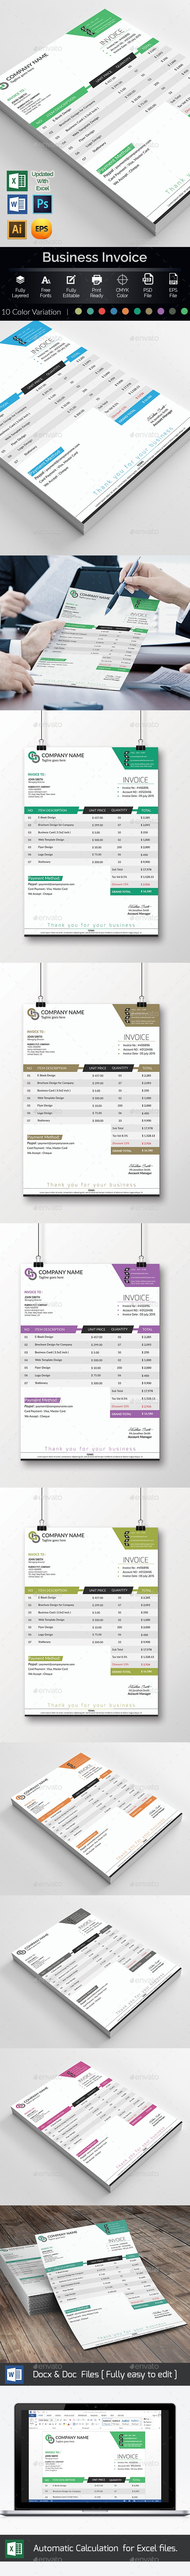 Invoice Template Excel - Proposals & Invoices Stationery